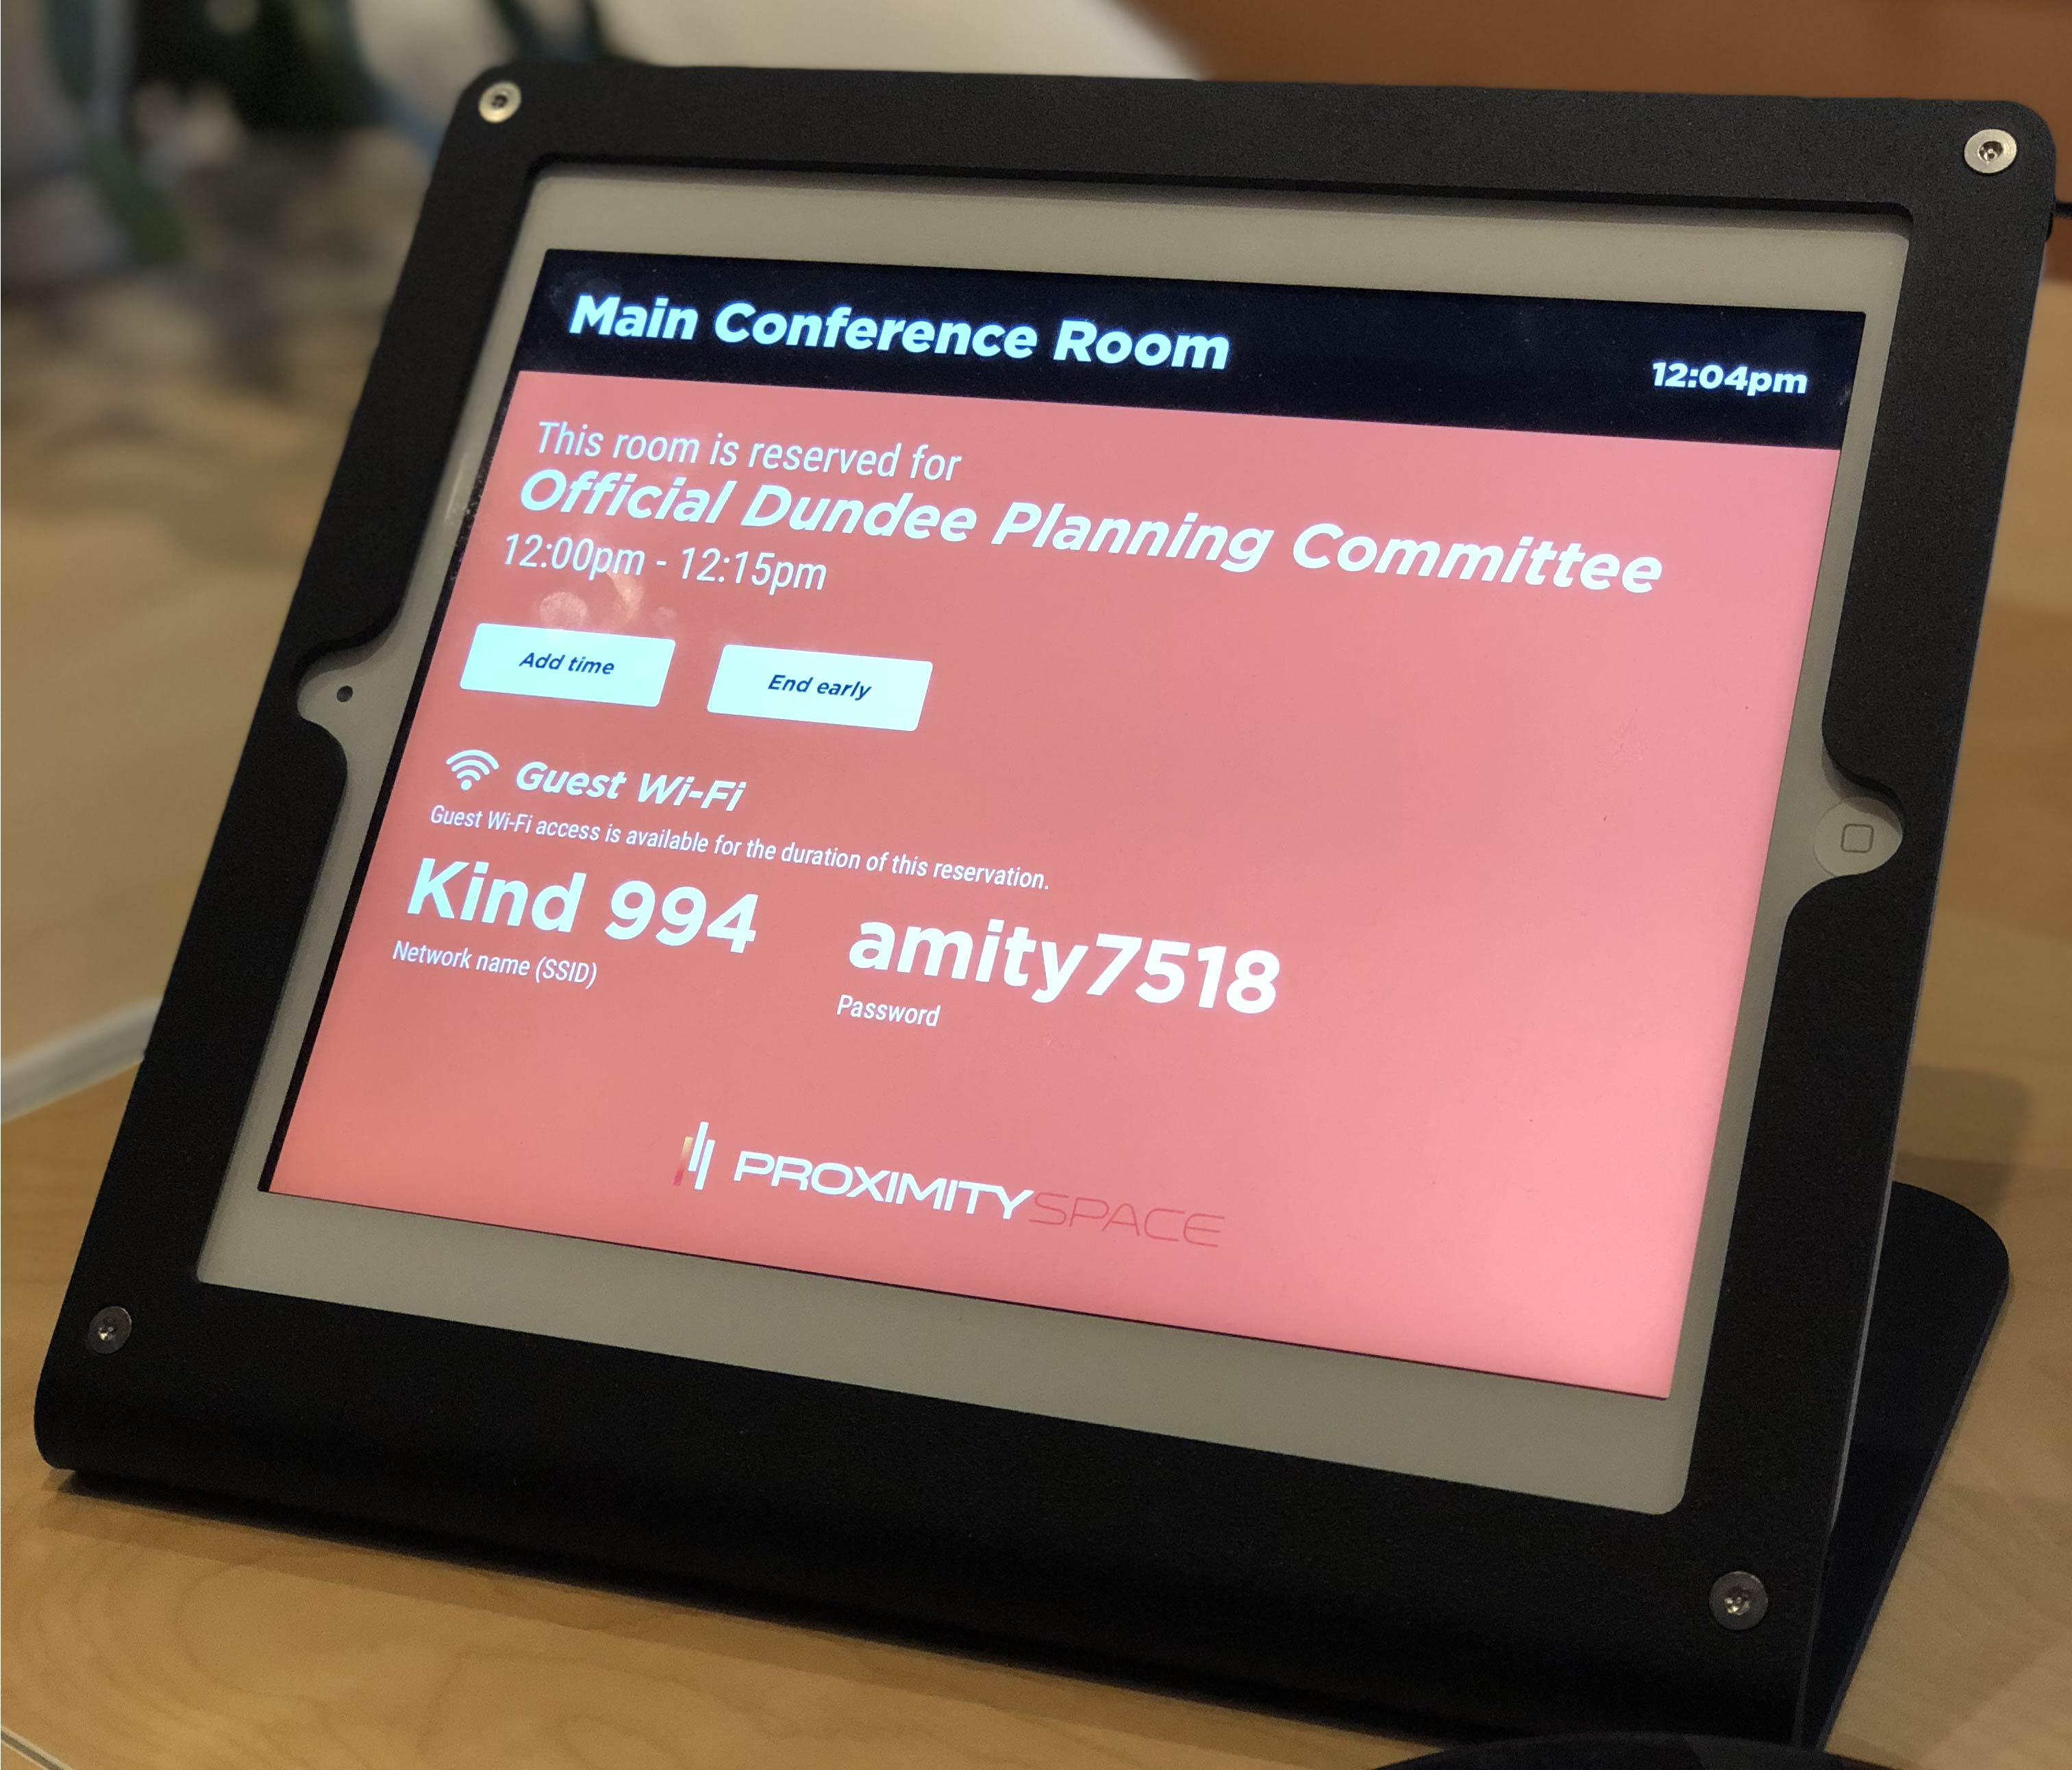 Main Conference Room View Showing Proximity Software